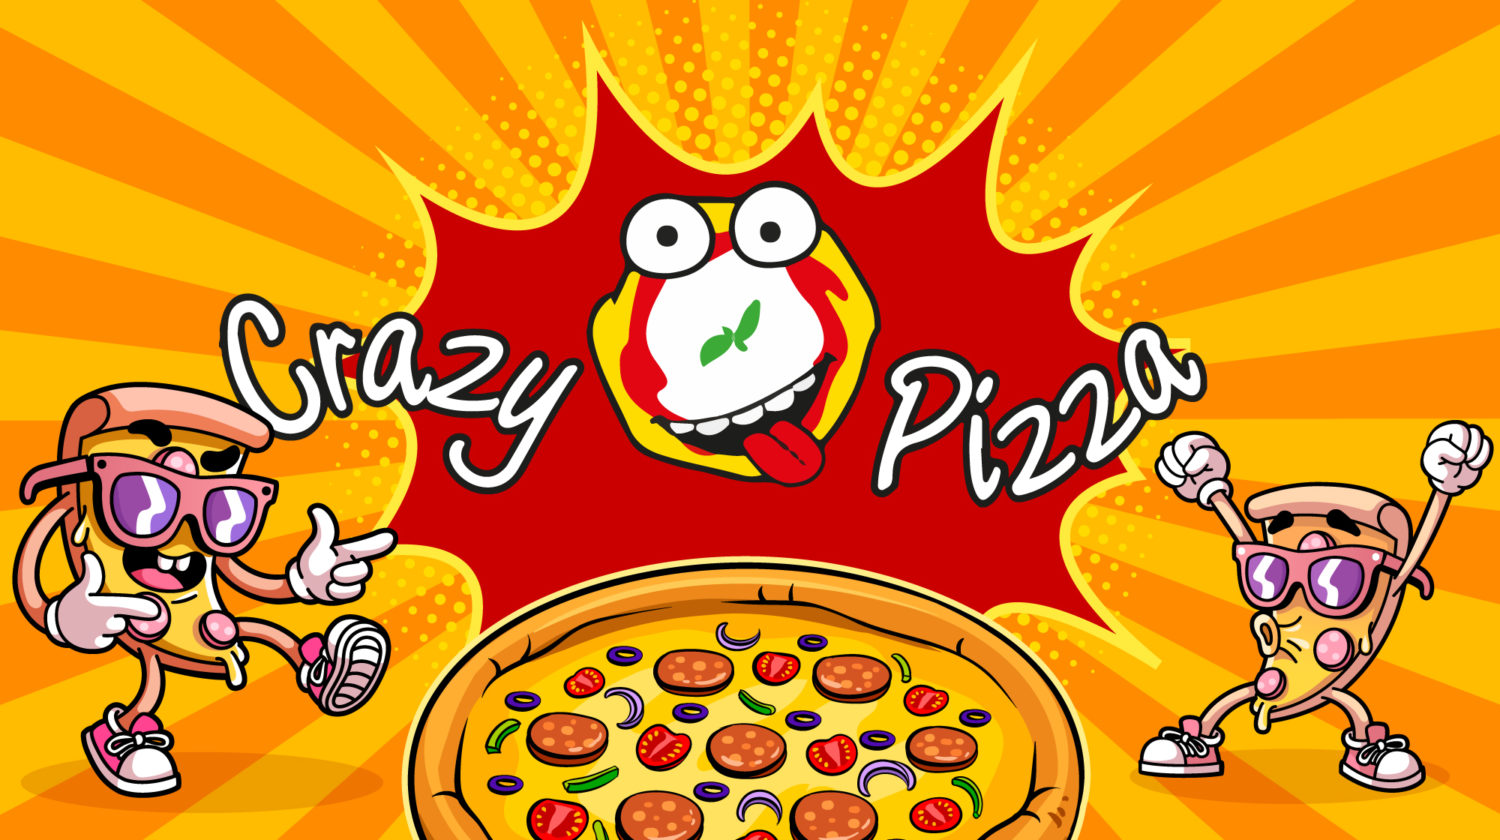 crazypizza desktop